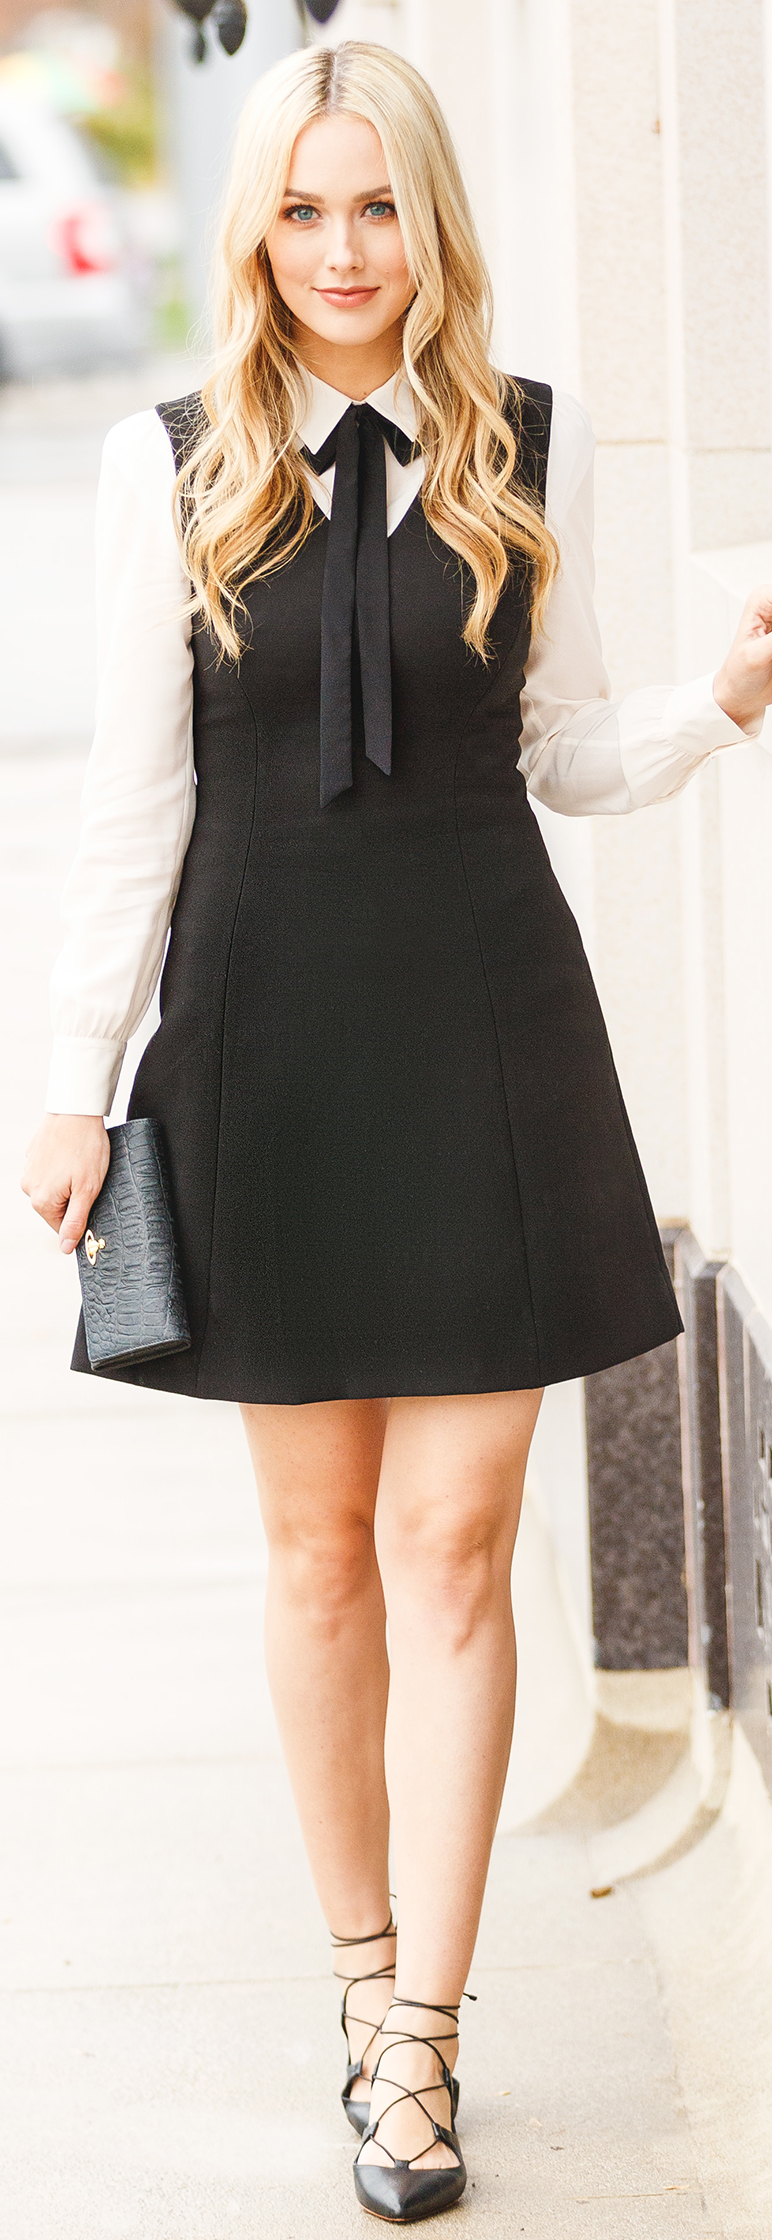 Black & Cream Dress (similar) – Lace Up Flats – Clutch - Fashion outfit - Blue Eyed Finch - Sheridan Gregory